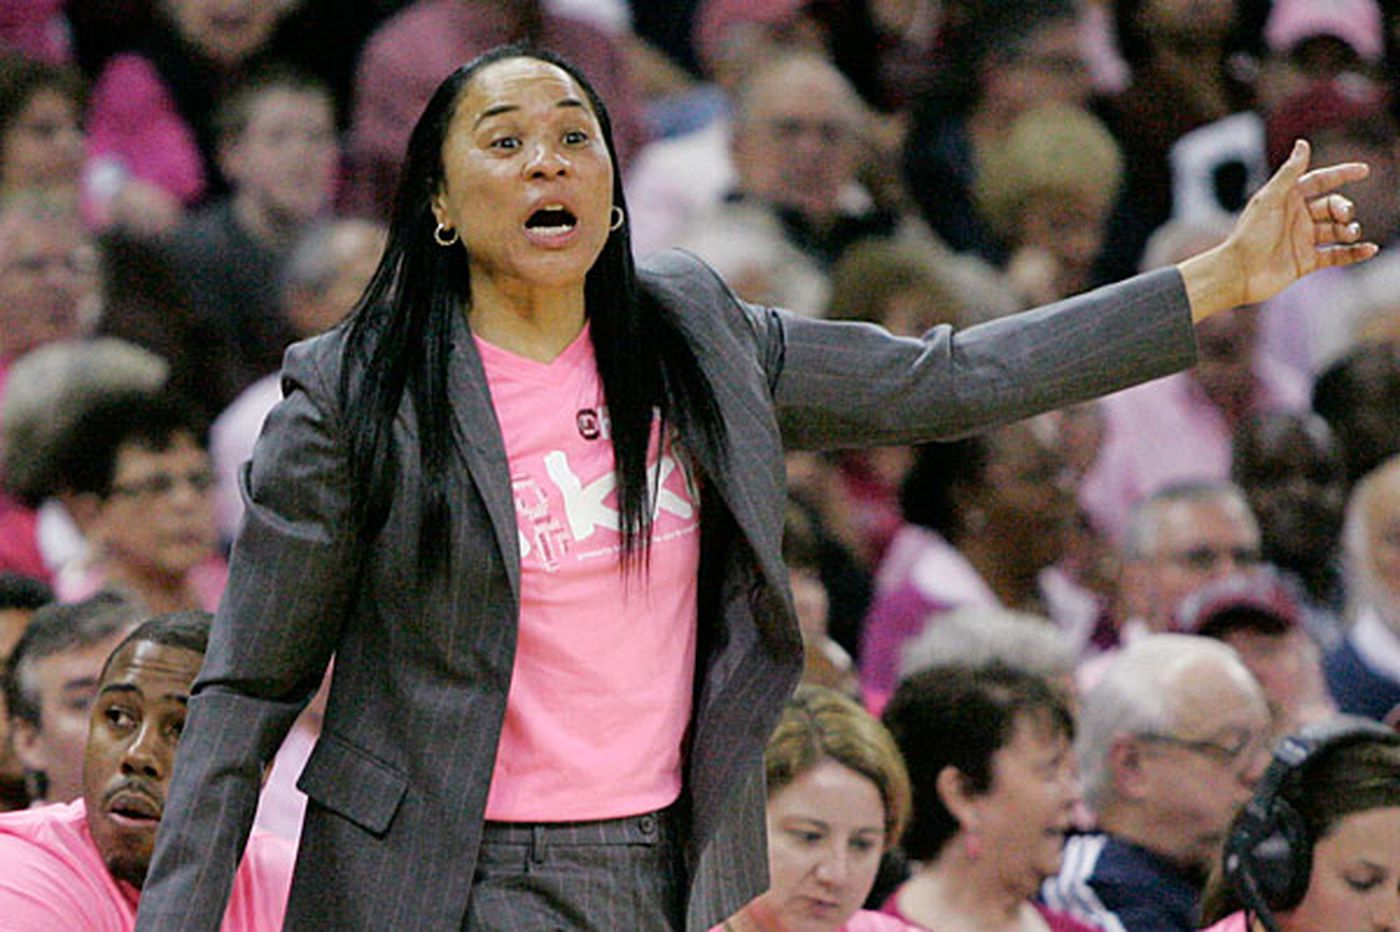 Dawn Staley uses Twitter to connect with fans